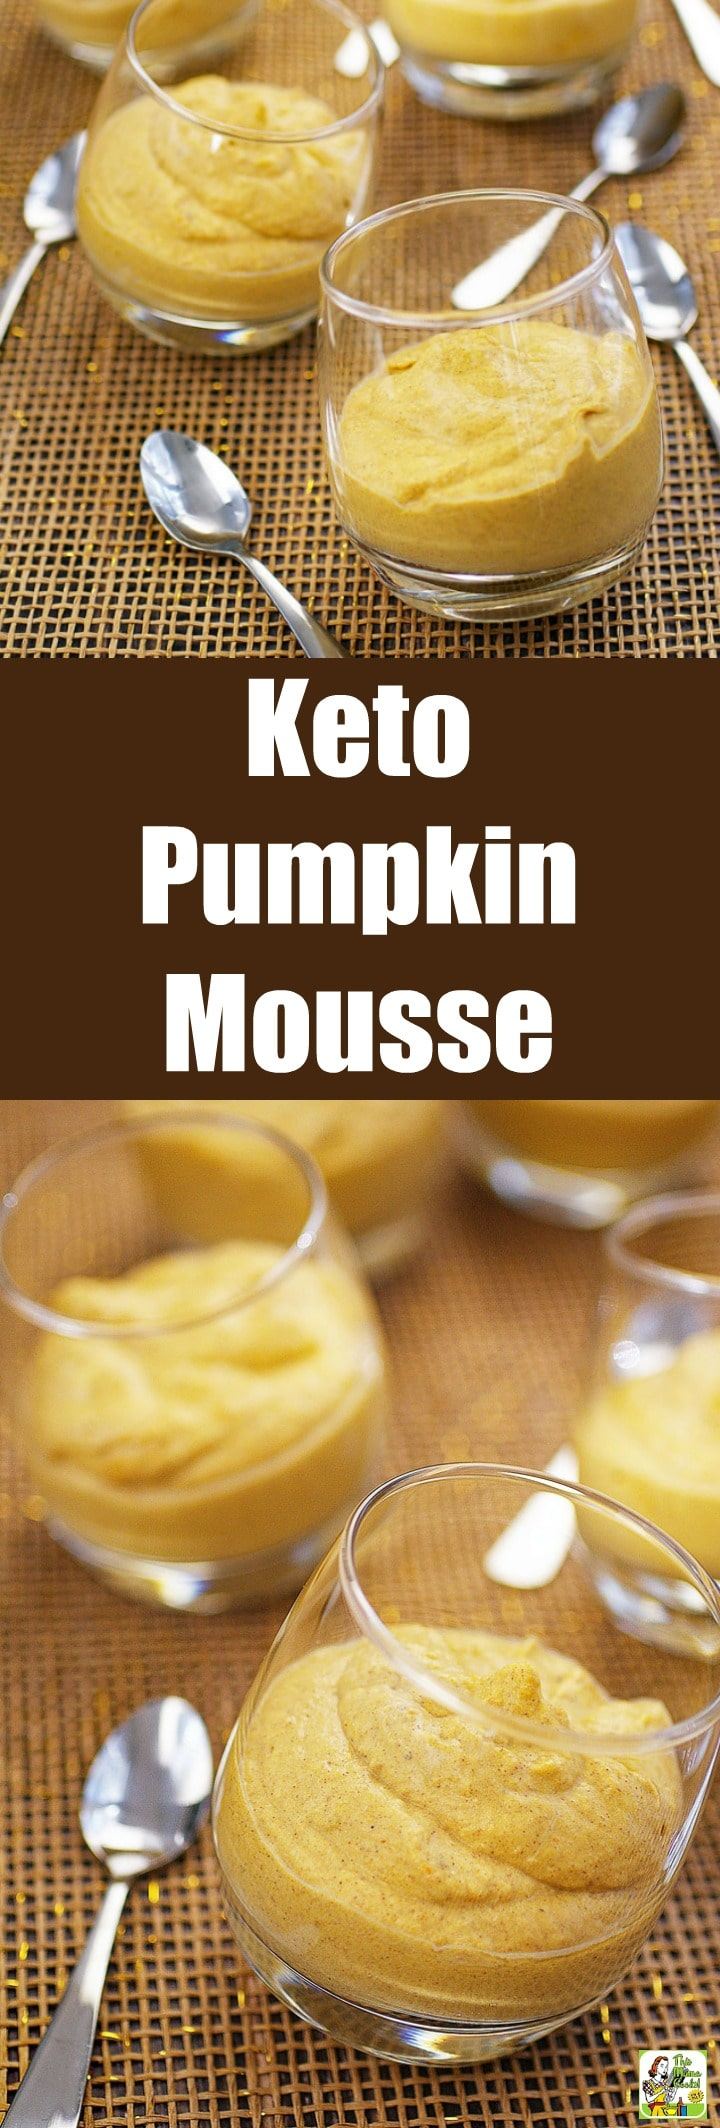 Keto Pumpkin Mousse is a four-ingredient no-bake dessert recipe. Use it to fill a pumpkin mousse pie. Everyone loves this creamy whipped pumpkin mousse dessert whether they're dairy-free, vegan, gluten-free, paleo, sugar-free, or low carb. #recipes #easy #recipeoftheday #glutenfree #easyrecipe #easyrecipes #glutenfreerecipes #snacks #desserts #dessertrecipes #pumpkindessert #pumpkinrecipe #pumpkin #pumpkinspice #halloween #thanksgiving #keto #paleo #lowcarb #sugarfree #dairyfree #nobake